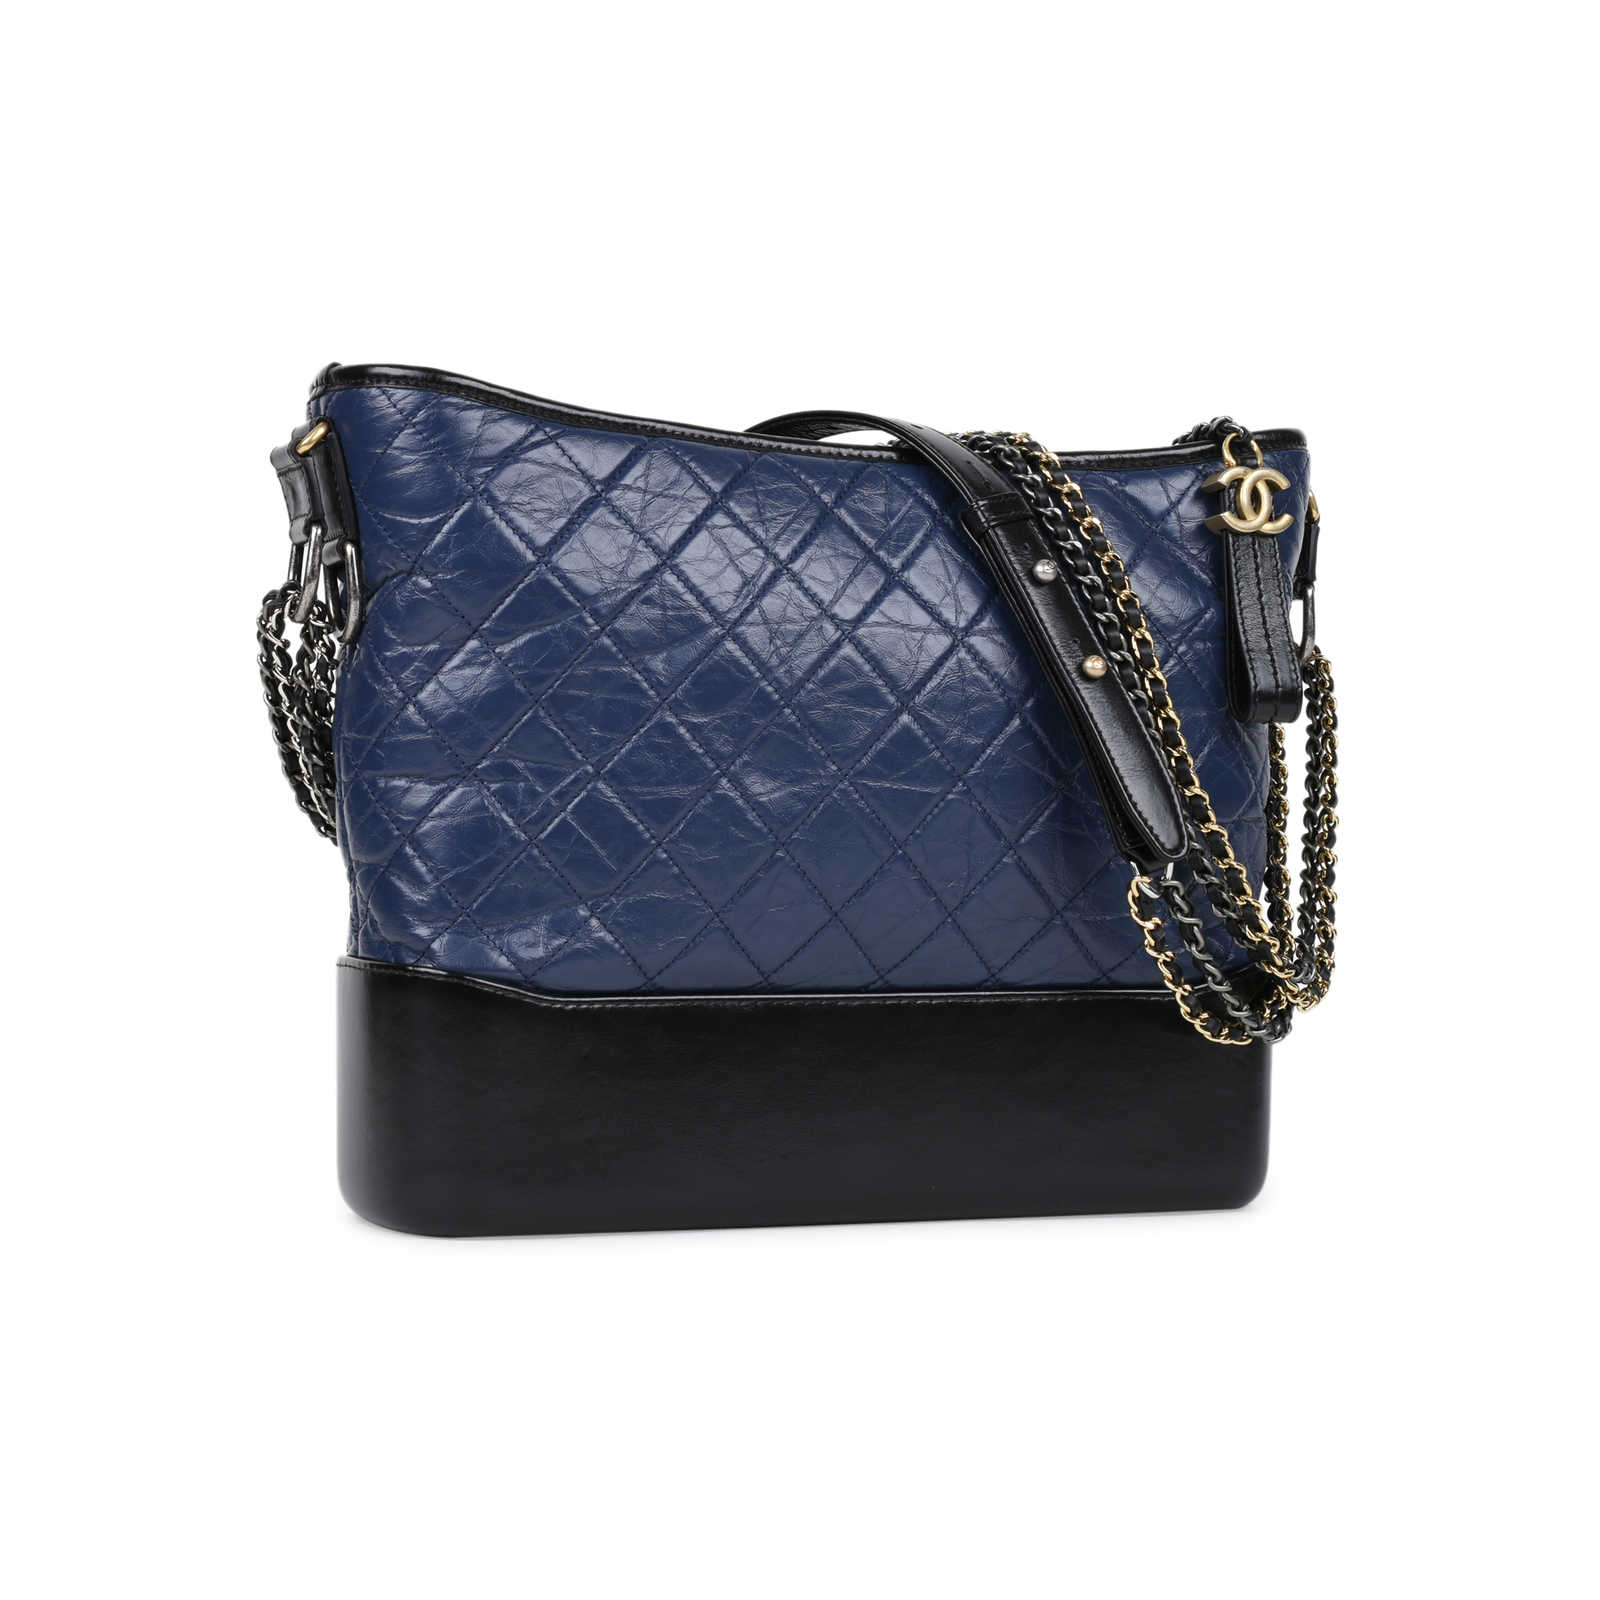 726dcb25781b ... Authentic Second Hand Chanel Gabrielle Large Hobo Bag (PSS-200-01512)  ...